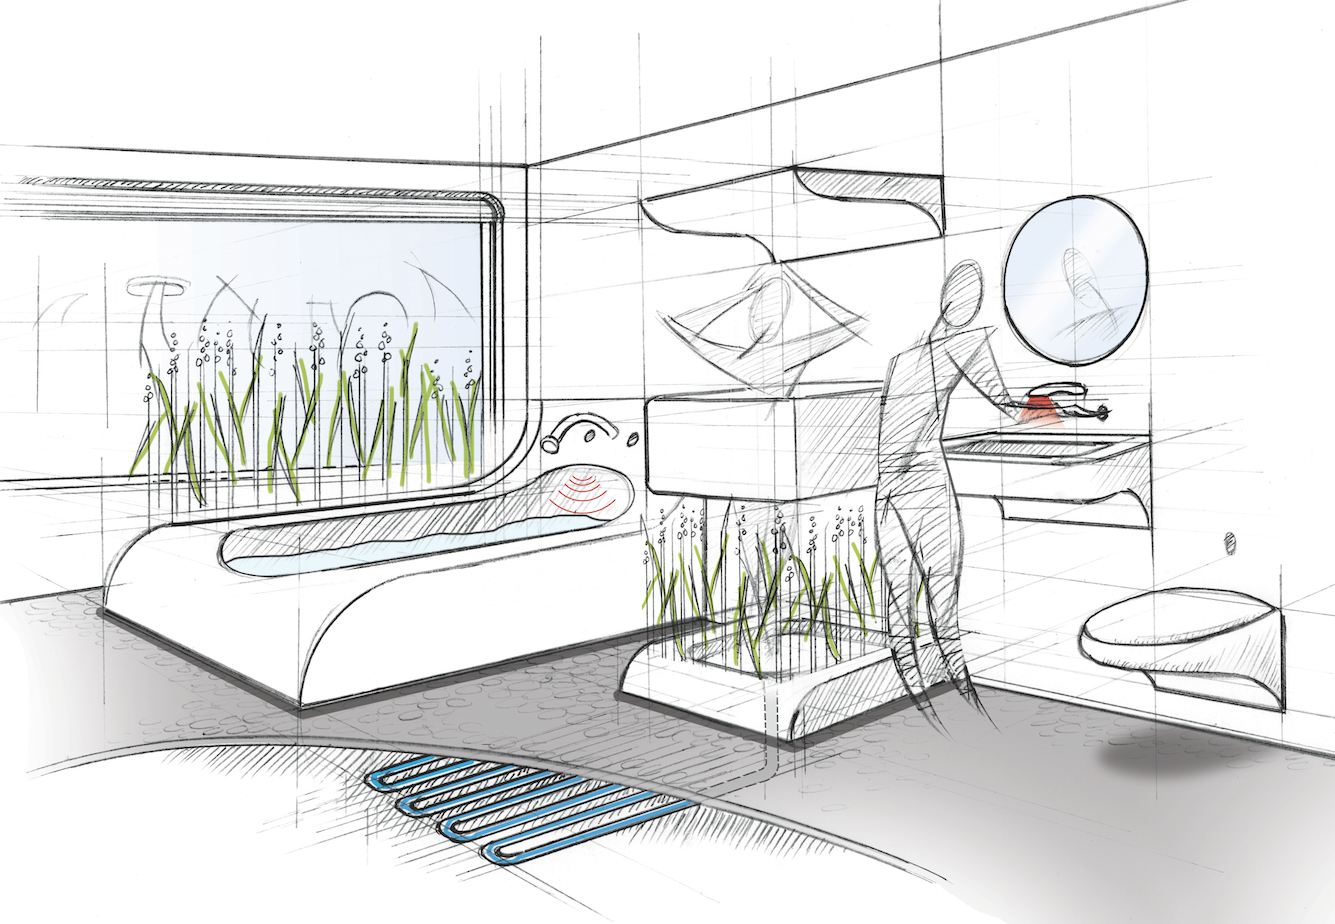 Bathrooms will have plants and bacteria in them that will treat waste water, so it can be used again